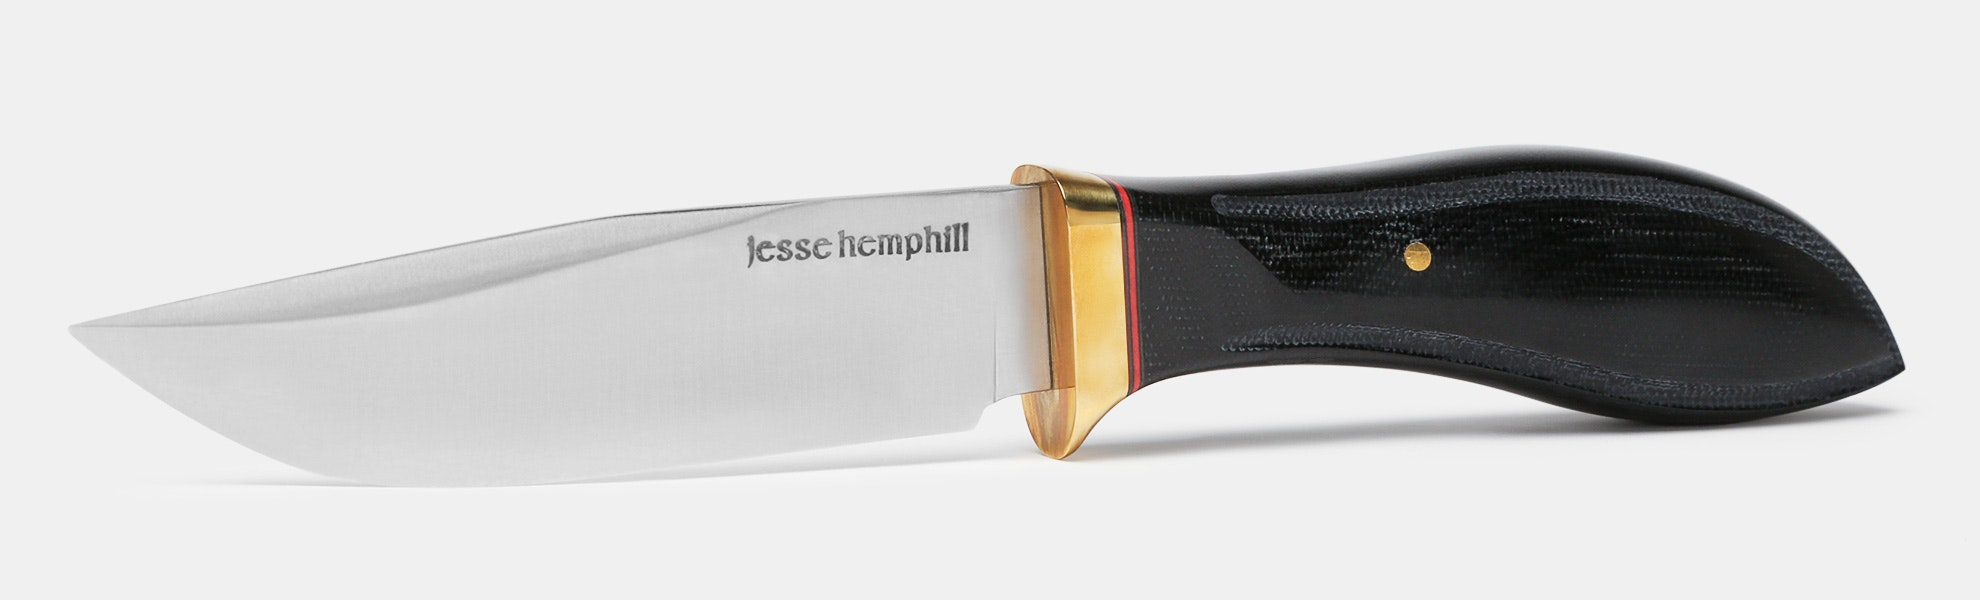 Jesse Hemphill Town Creek Fixed Blade Knife w/ A2